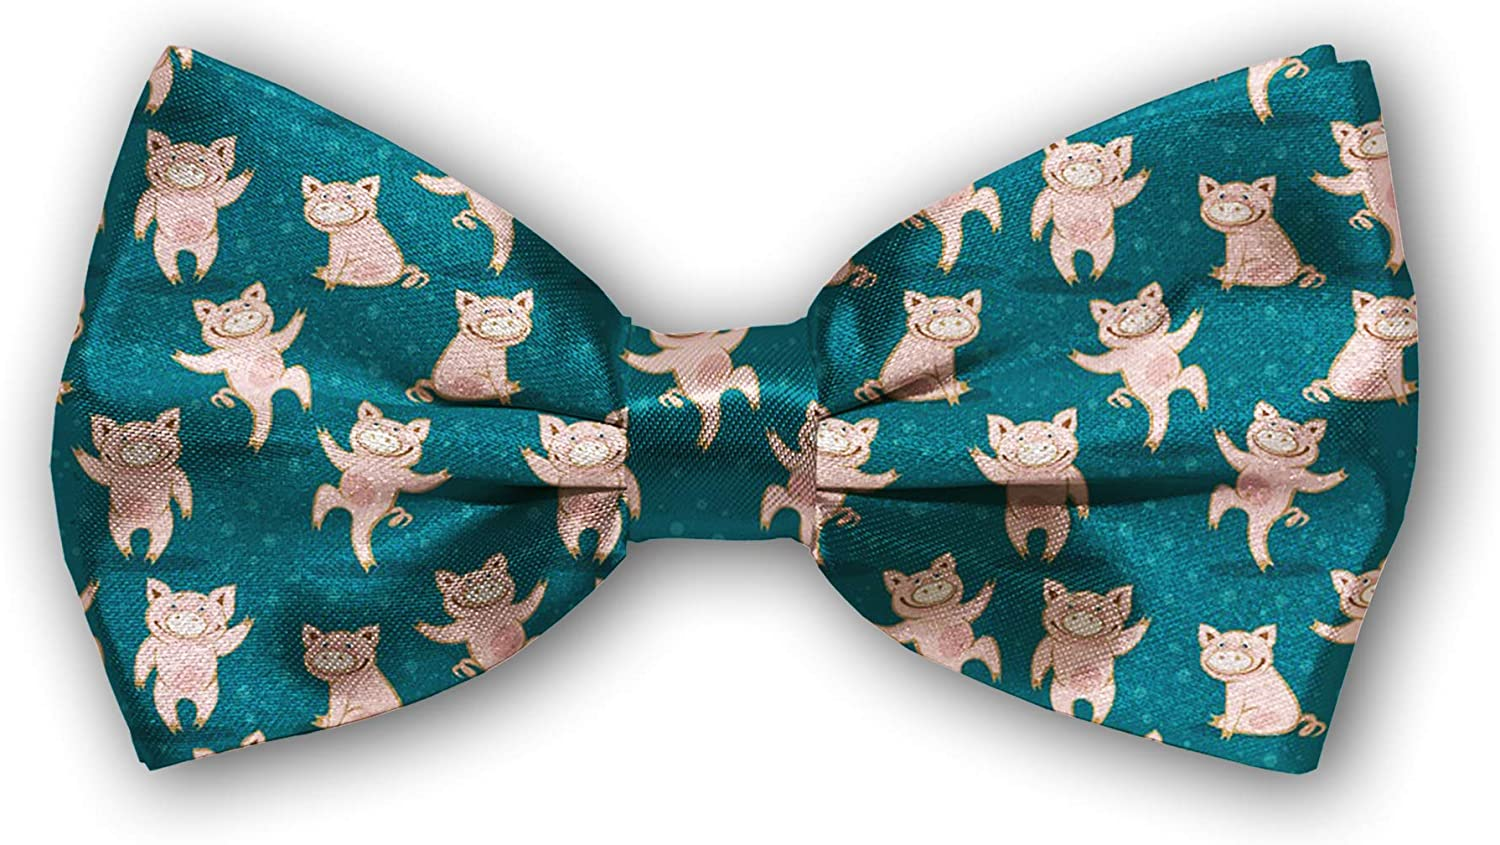 Bow Tie Tuxedo Butterfly Cotton Boys San Antonio Mall Bowtie Mens for Adjustable New color